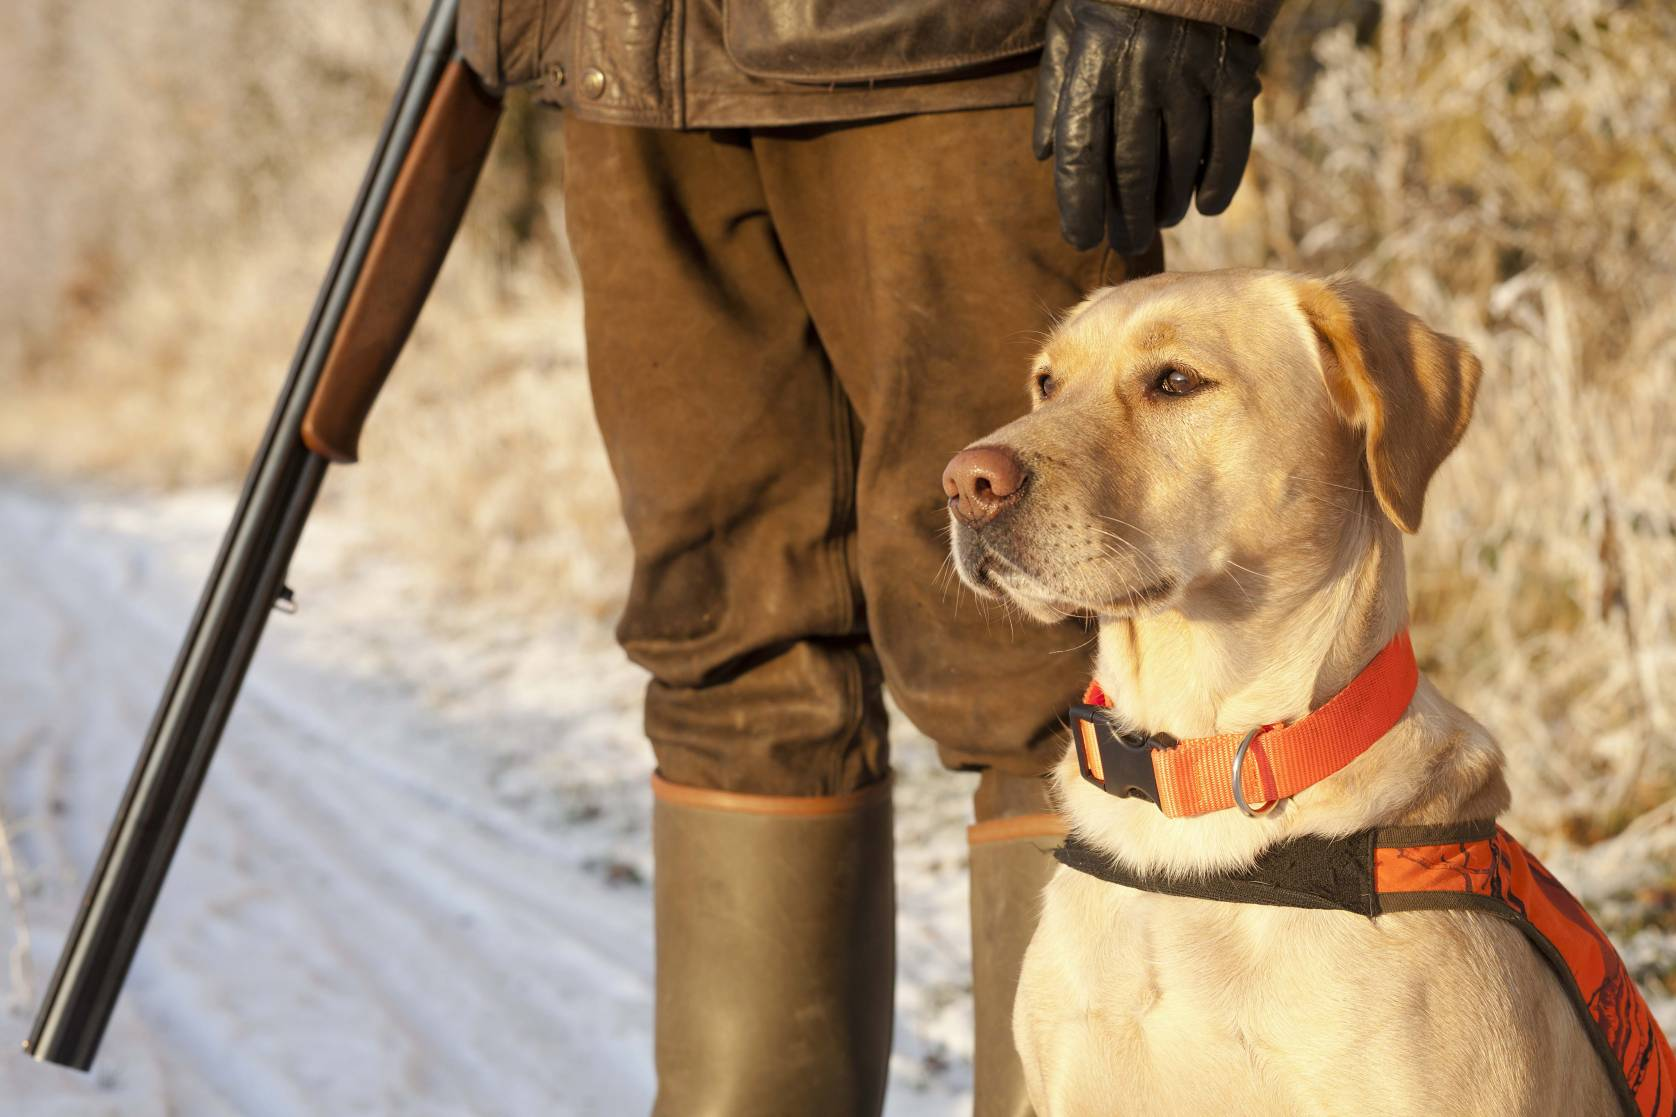 Hunter with Rifle standing next to yellow Labrador Dog